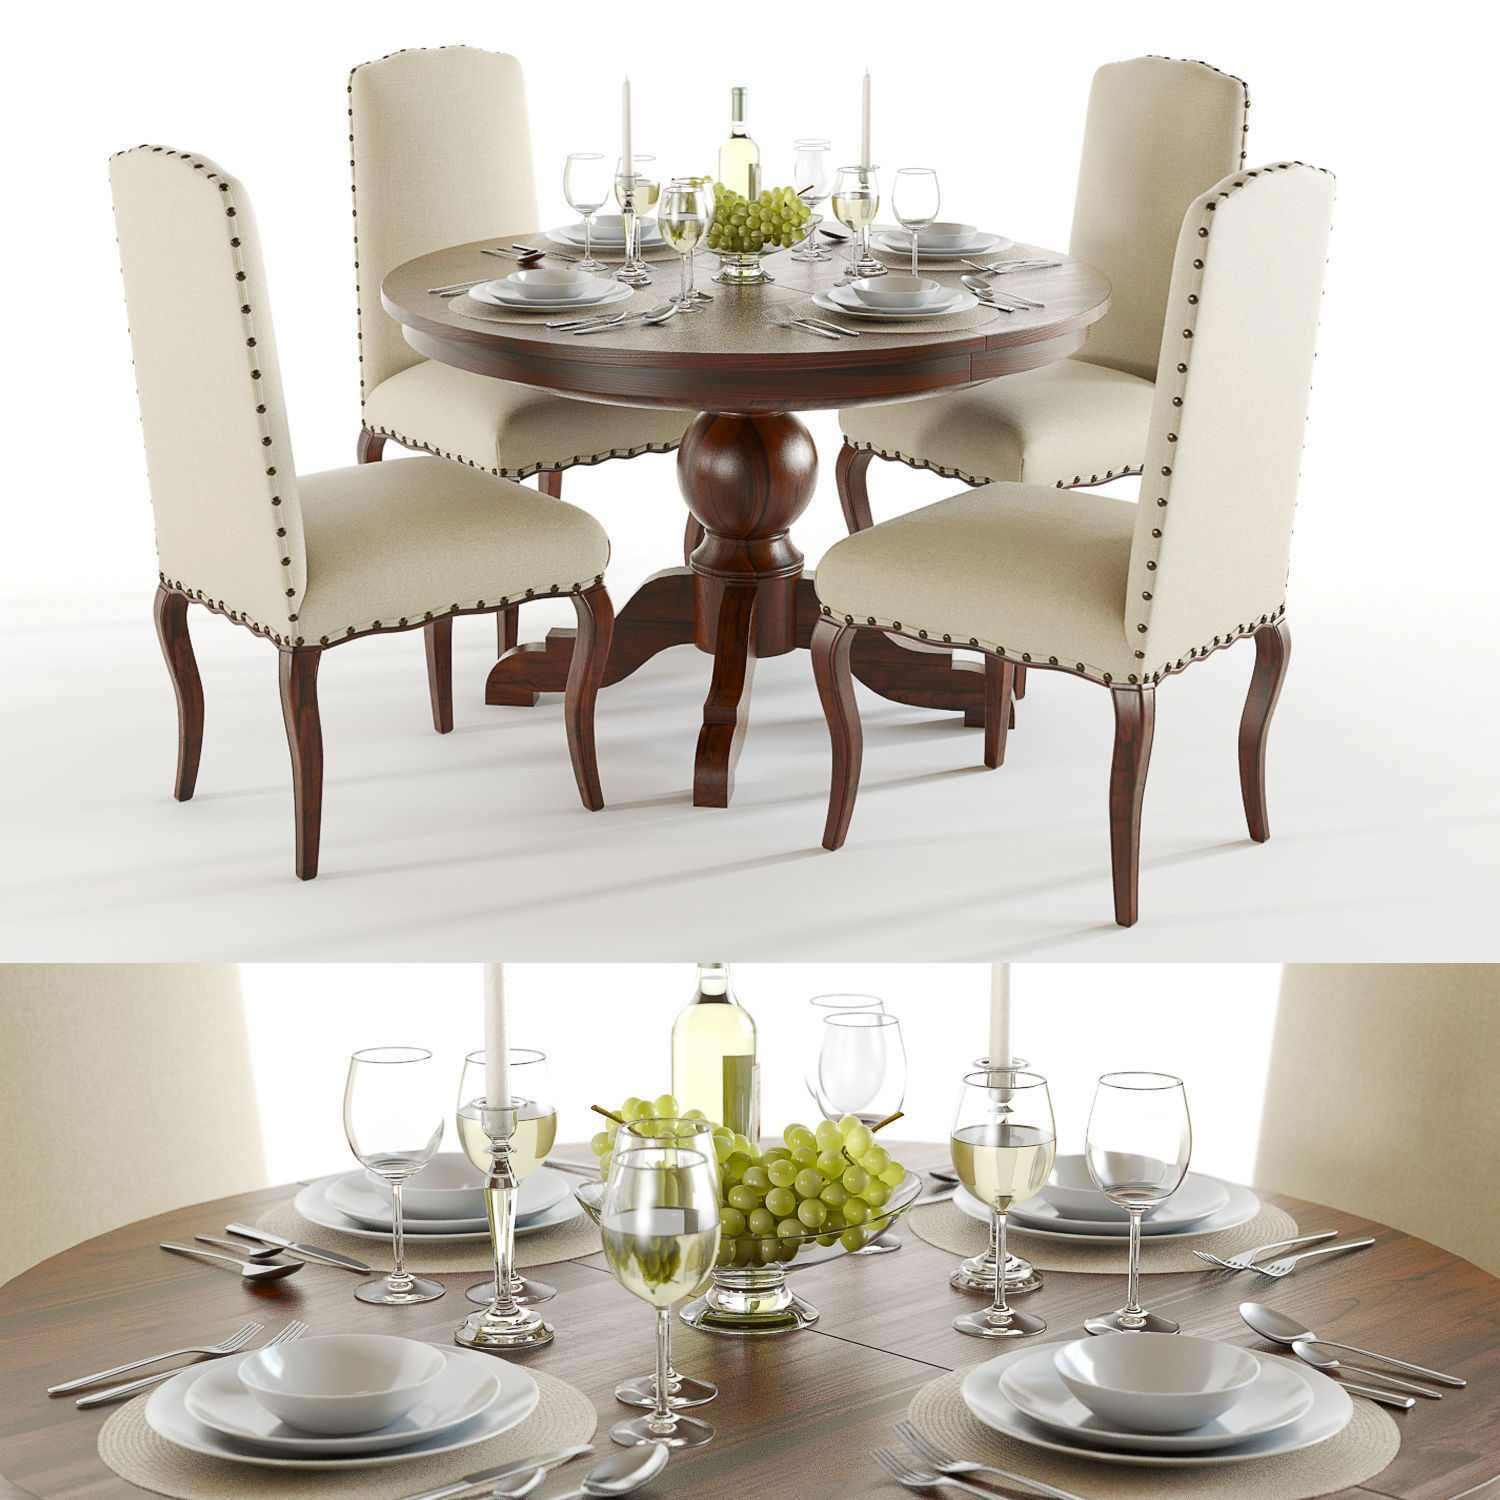 Pottery Barn - Sumner and Calais Dining set | 3D model